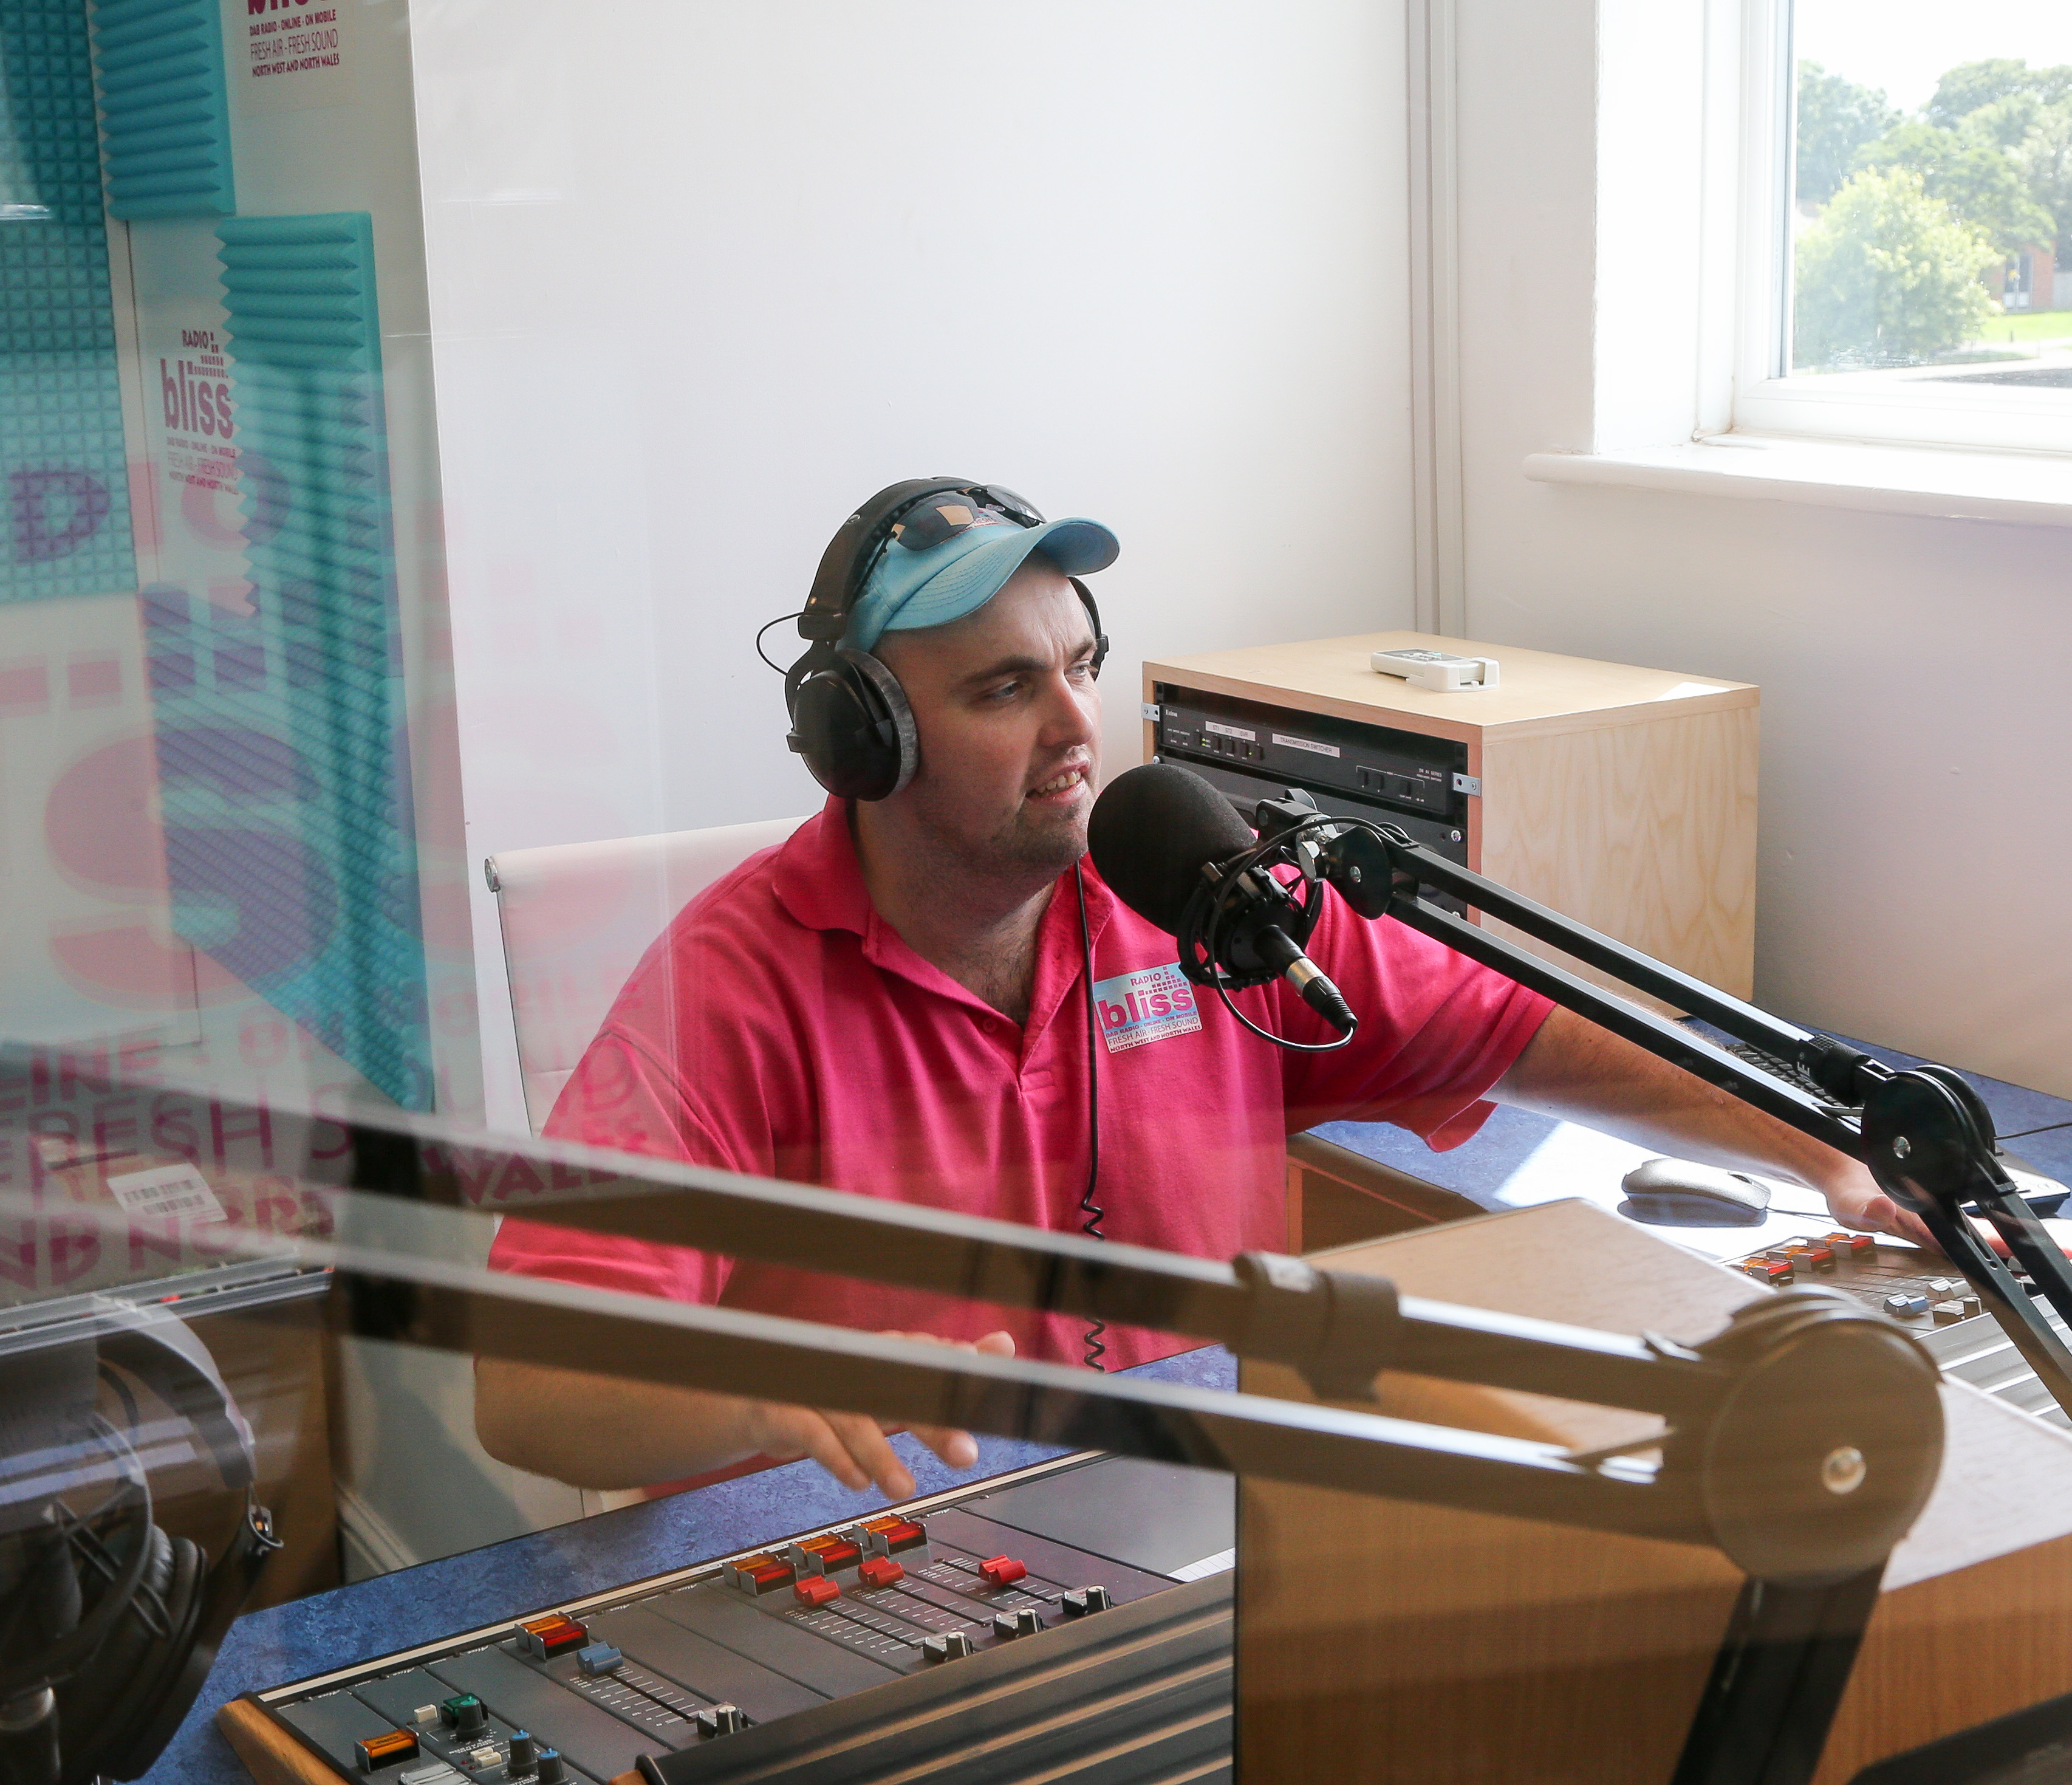 Sean is making waves with plan for radio station